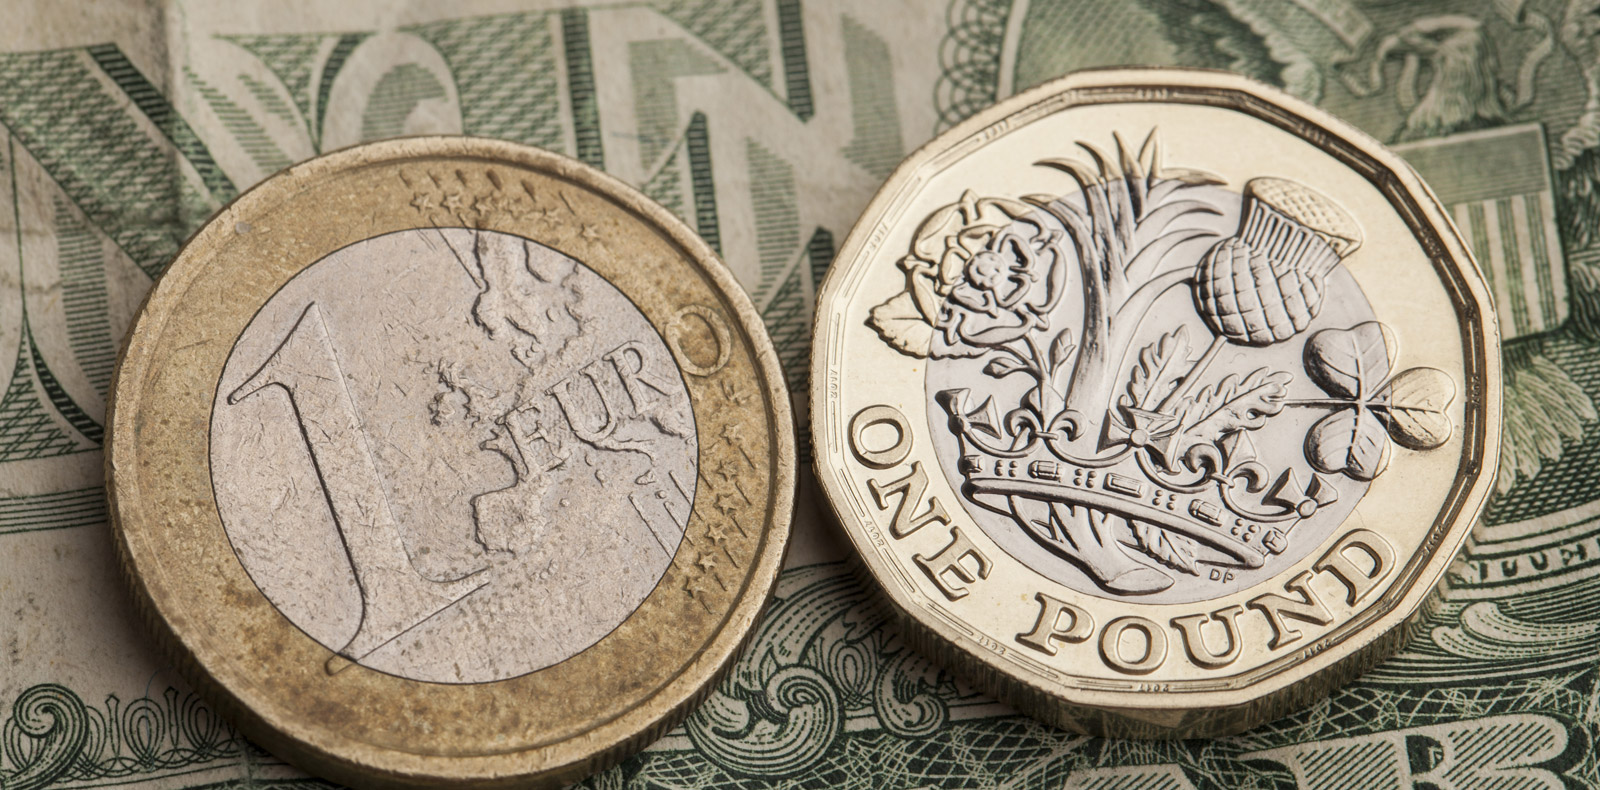 Sterling moved higher against the euro and US dollar despite news of rising job losses amongst high street retailers.